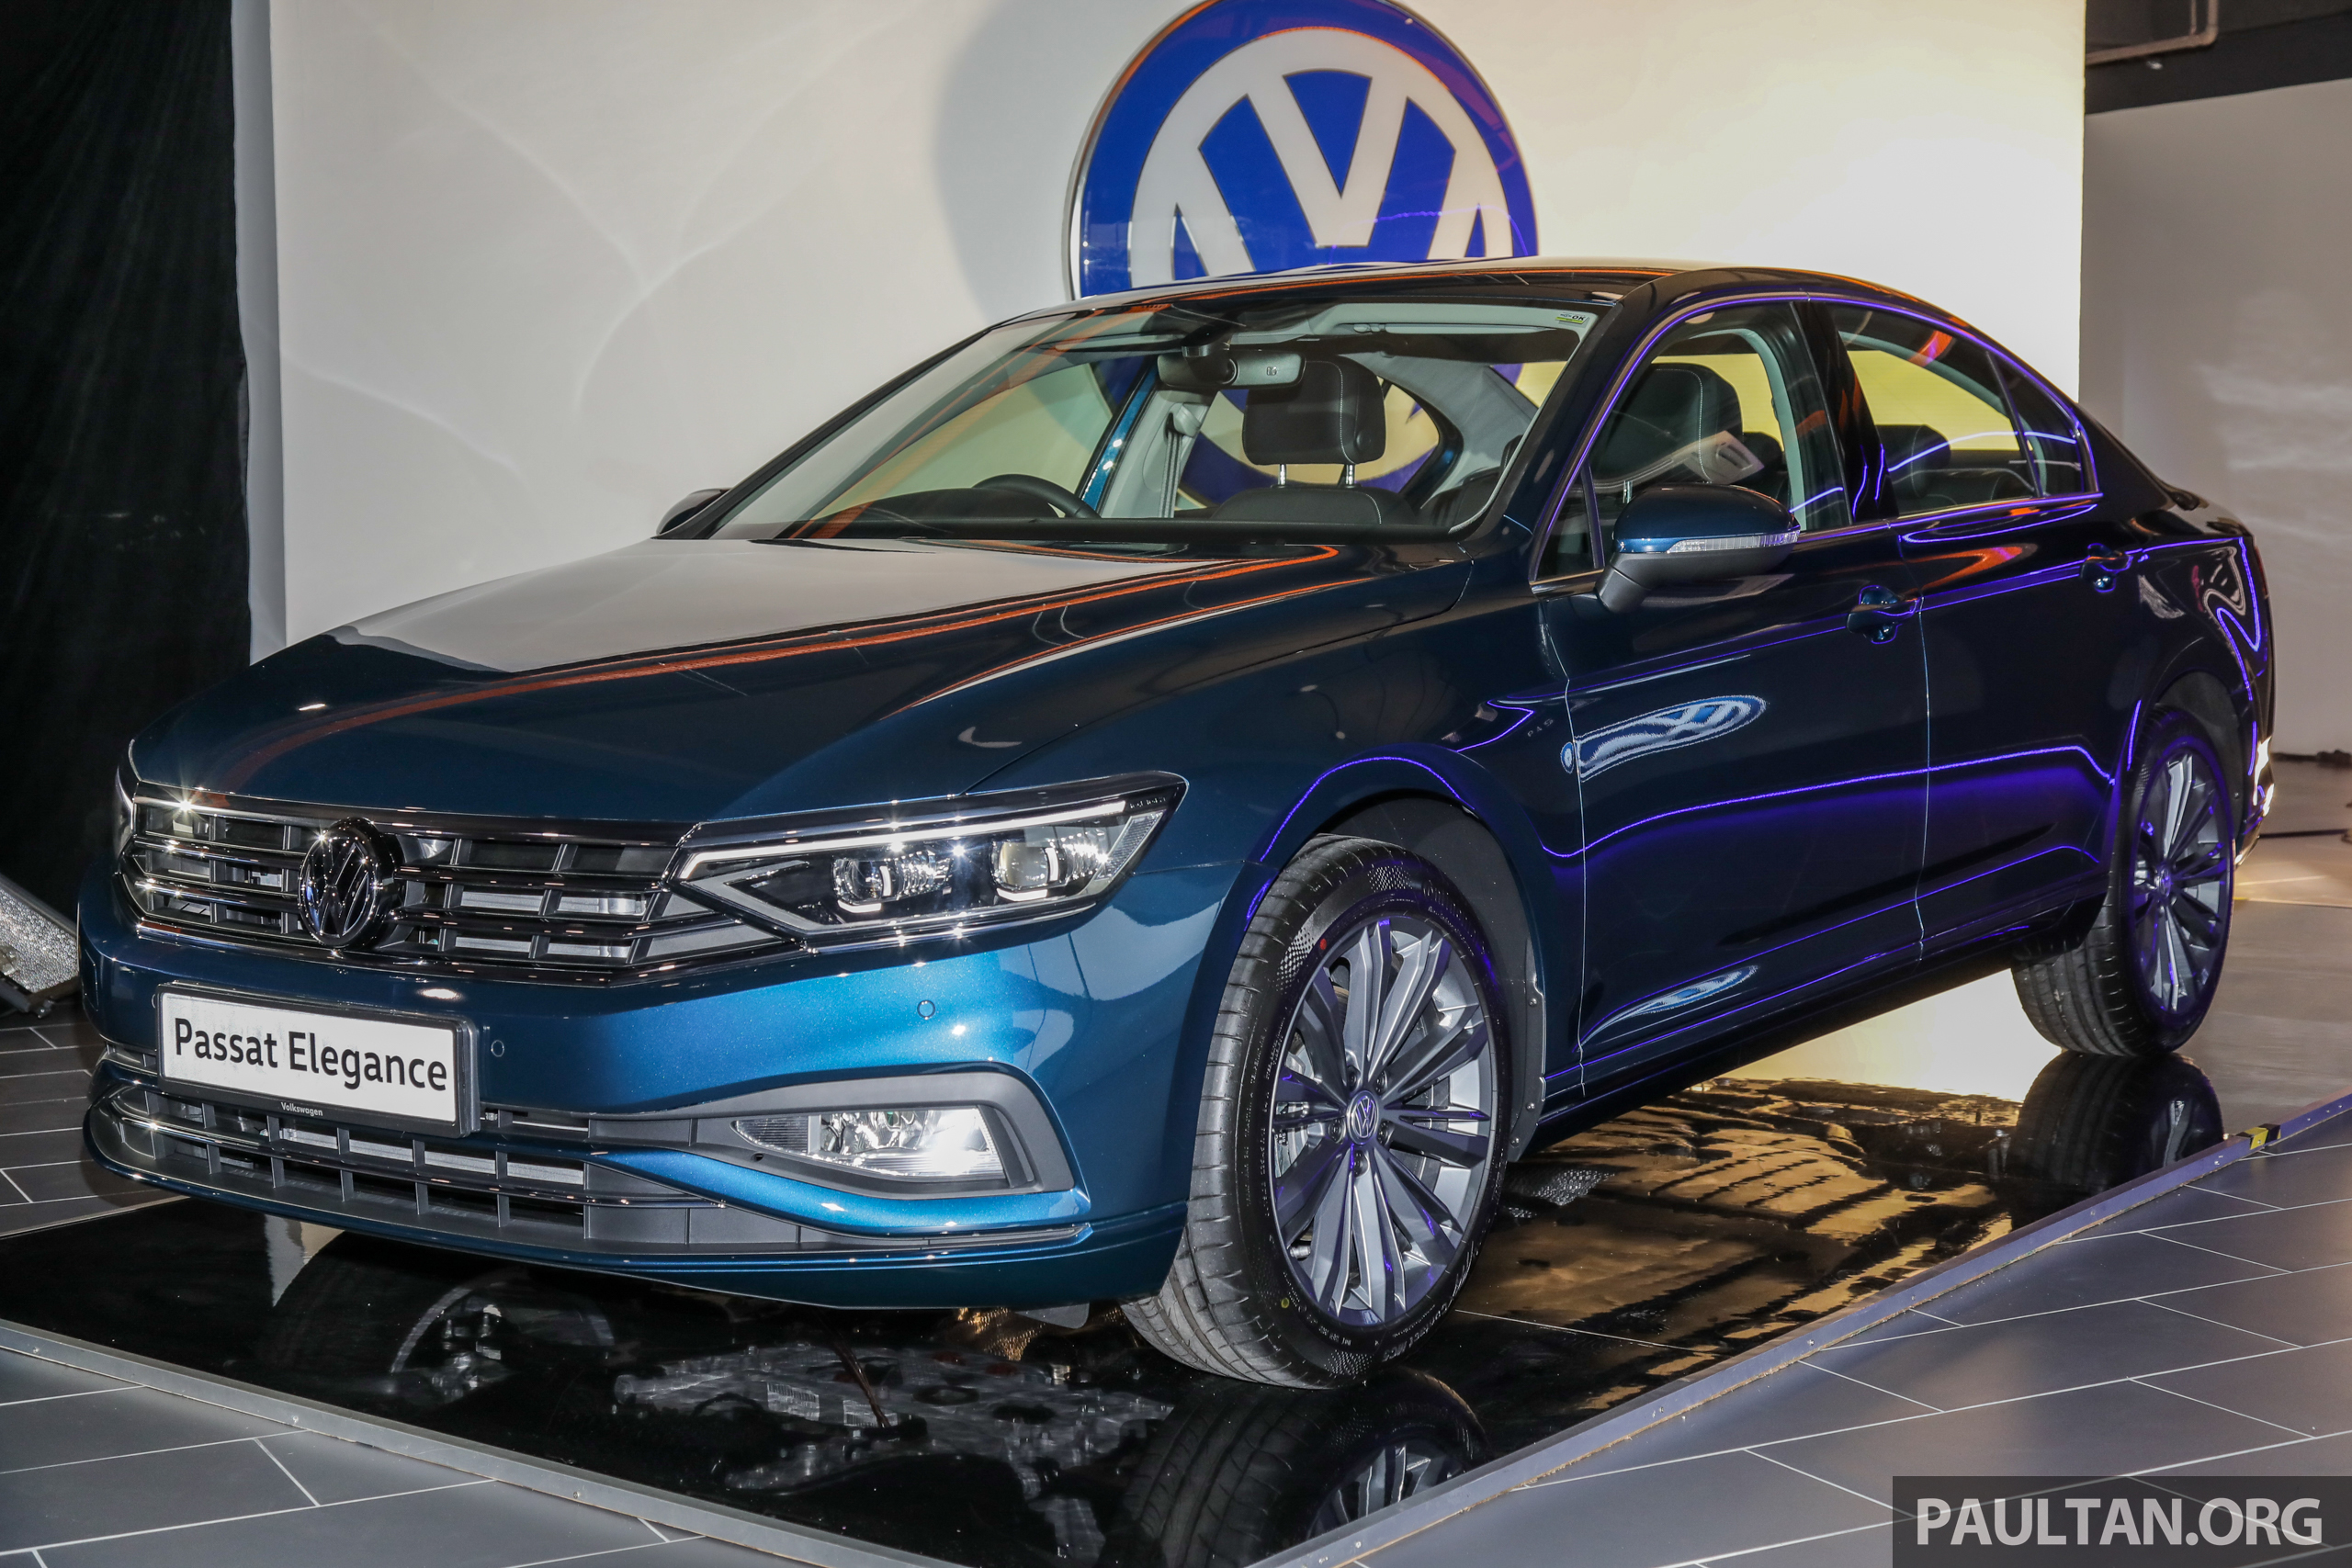 2020 Volkswagen Passat Facelift Launched In Malaysia 2 0 Tsi Elegance New 7 Speed Wet Dsg Rm189k Paultan Org